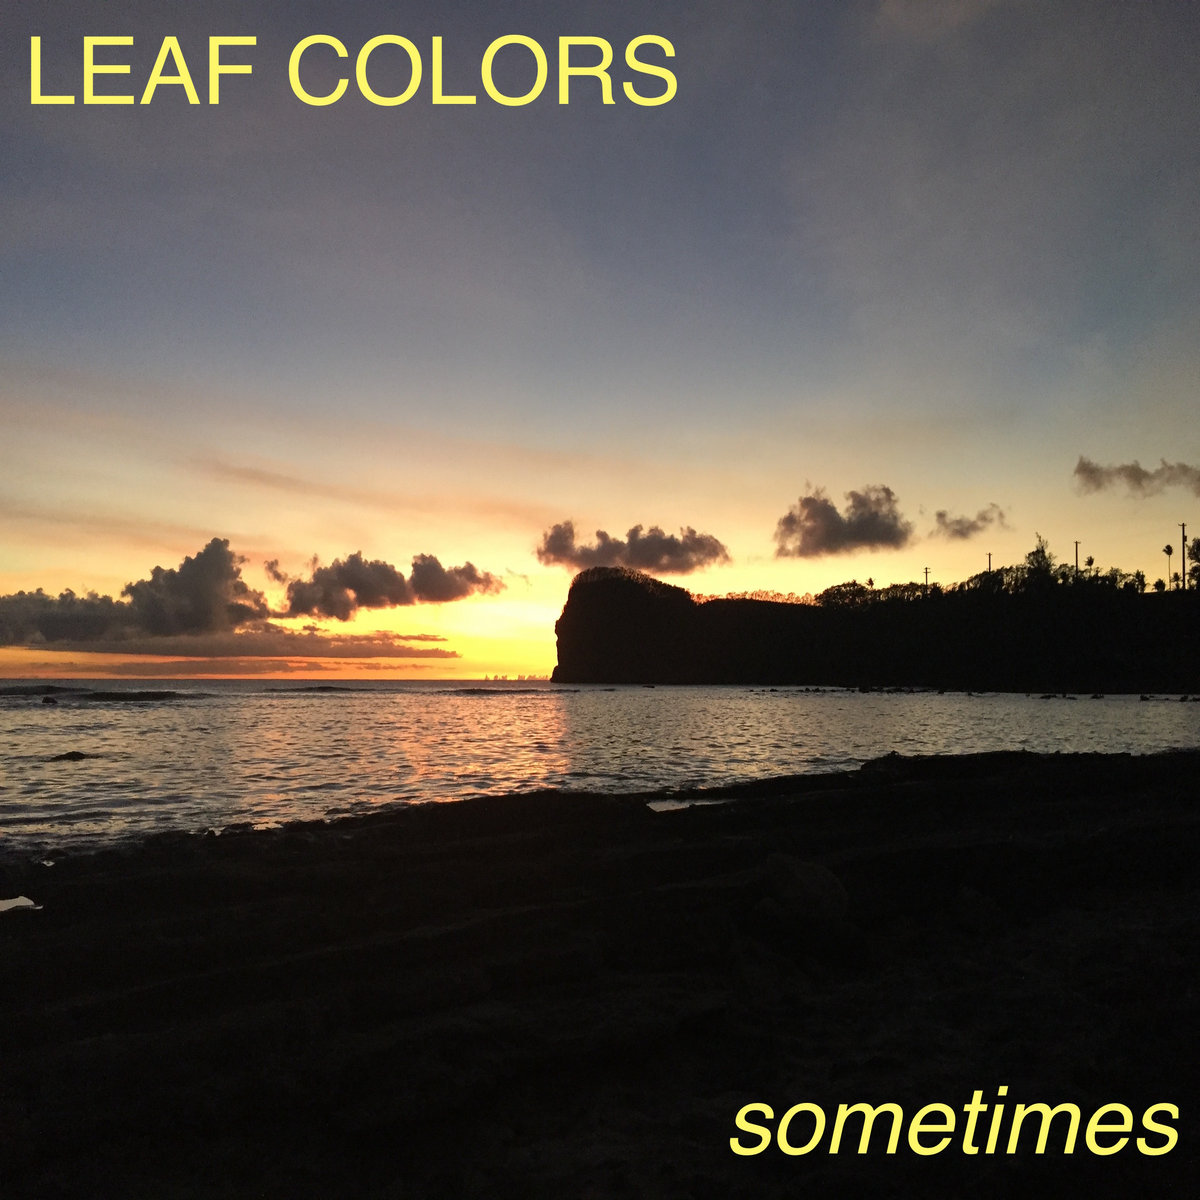 Sometimes by Leaf Colors